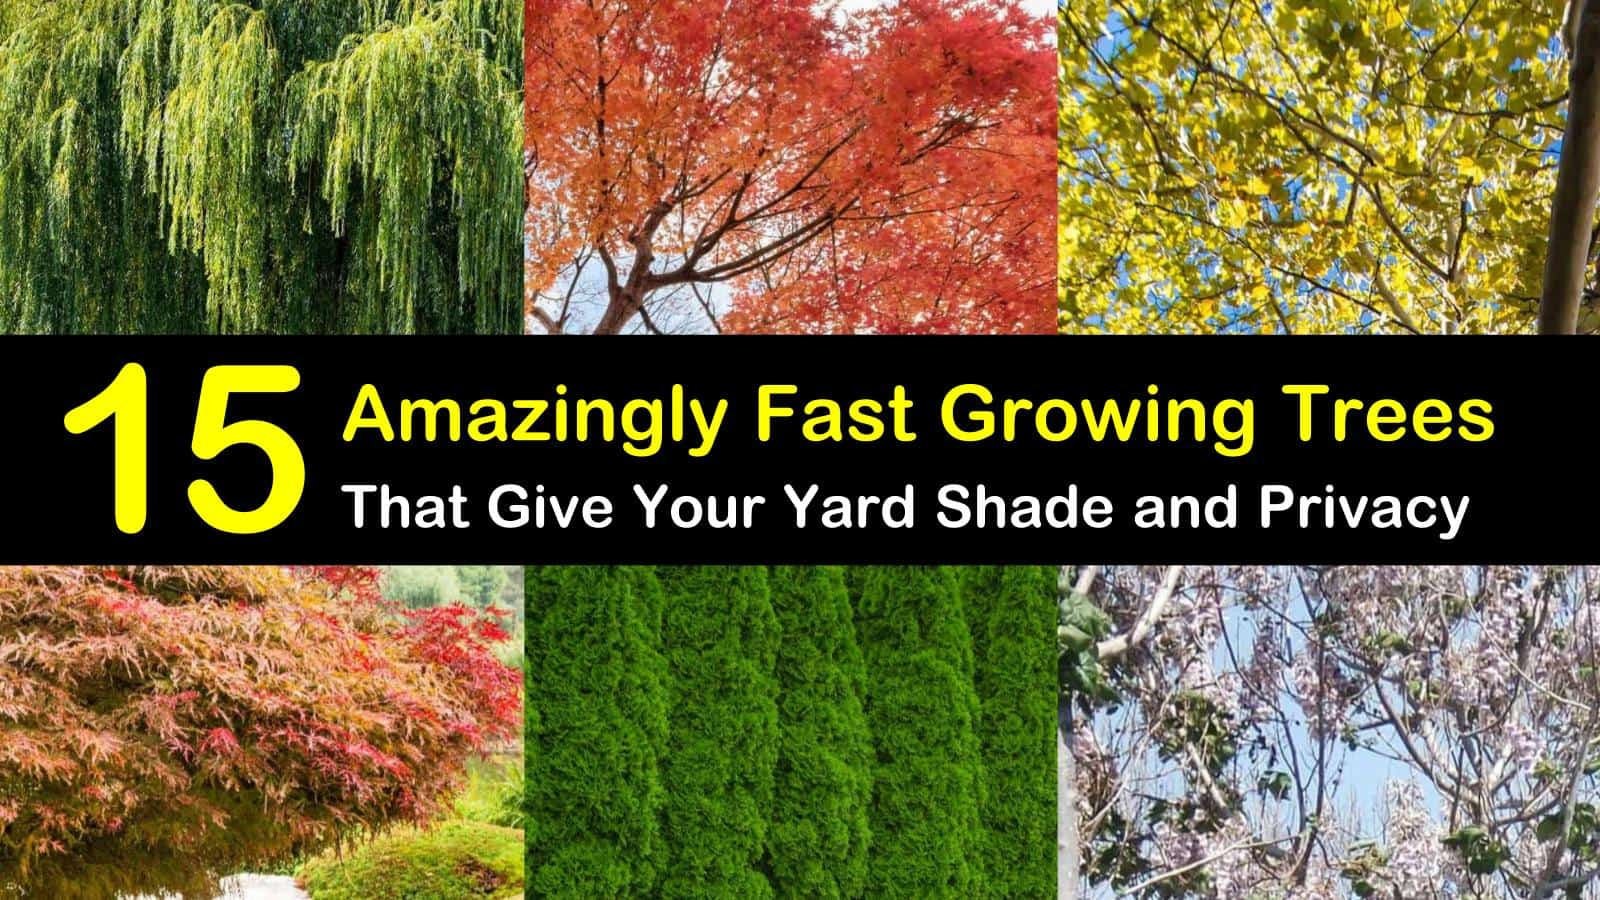 15 Amazingly Fast Growing Trees That Give Your Yard Shade And Privacy